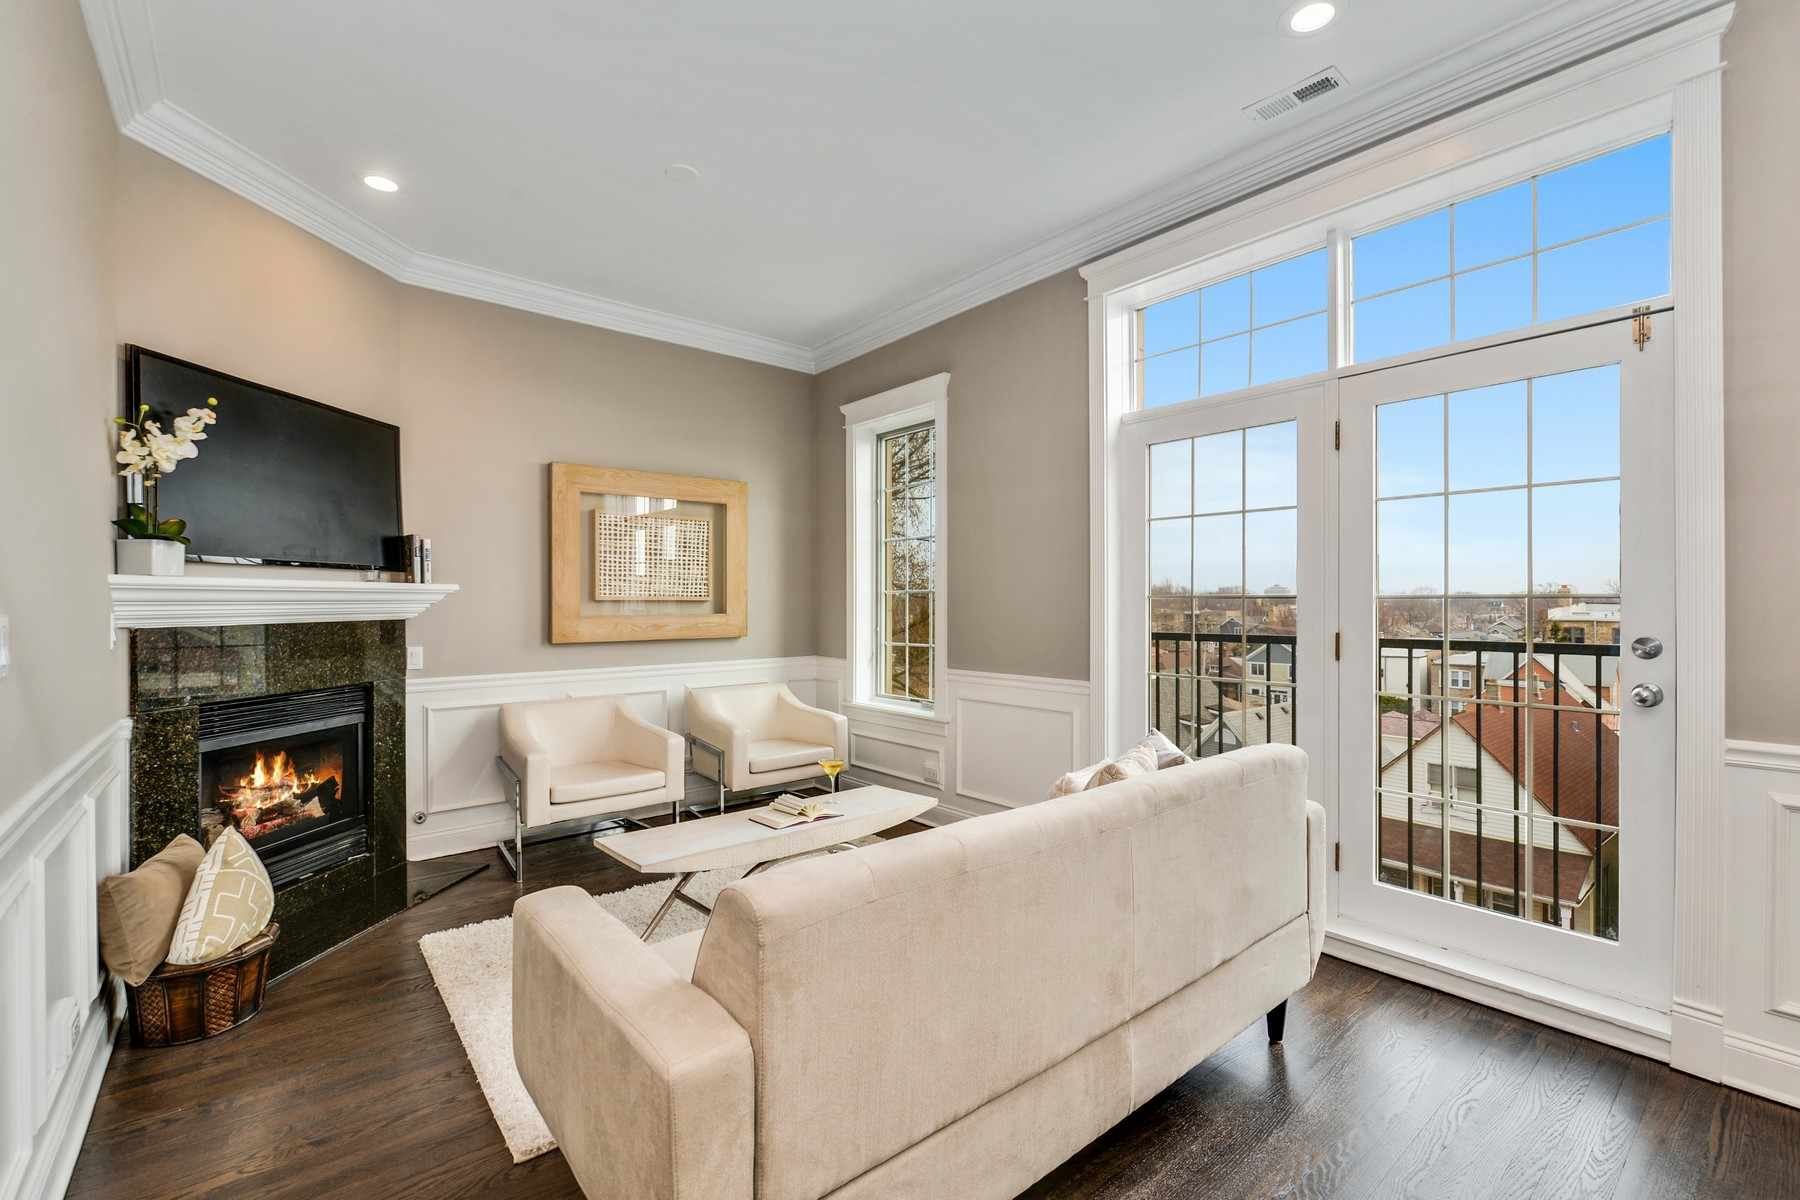 Single Family Home for Sale at Top Floor Unit with Private Rooftop 2248 W Foster Avenue Unit 4, Lincoln Square, Chicago, Illinois, 60625 United States